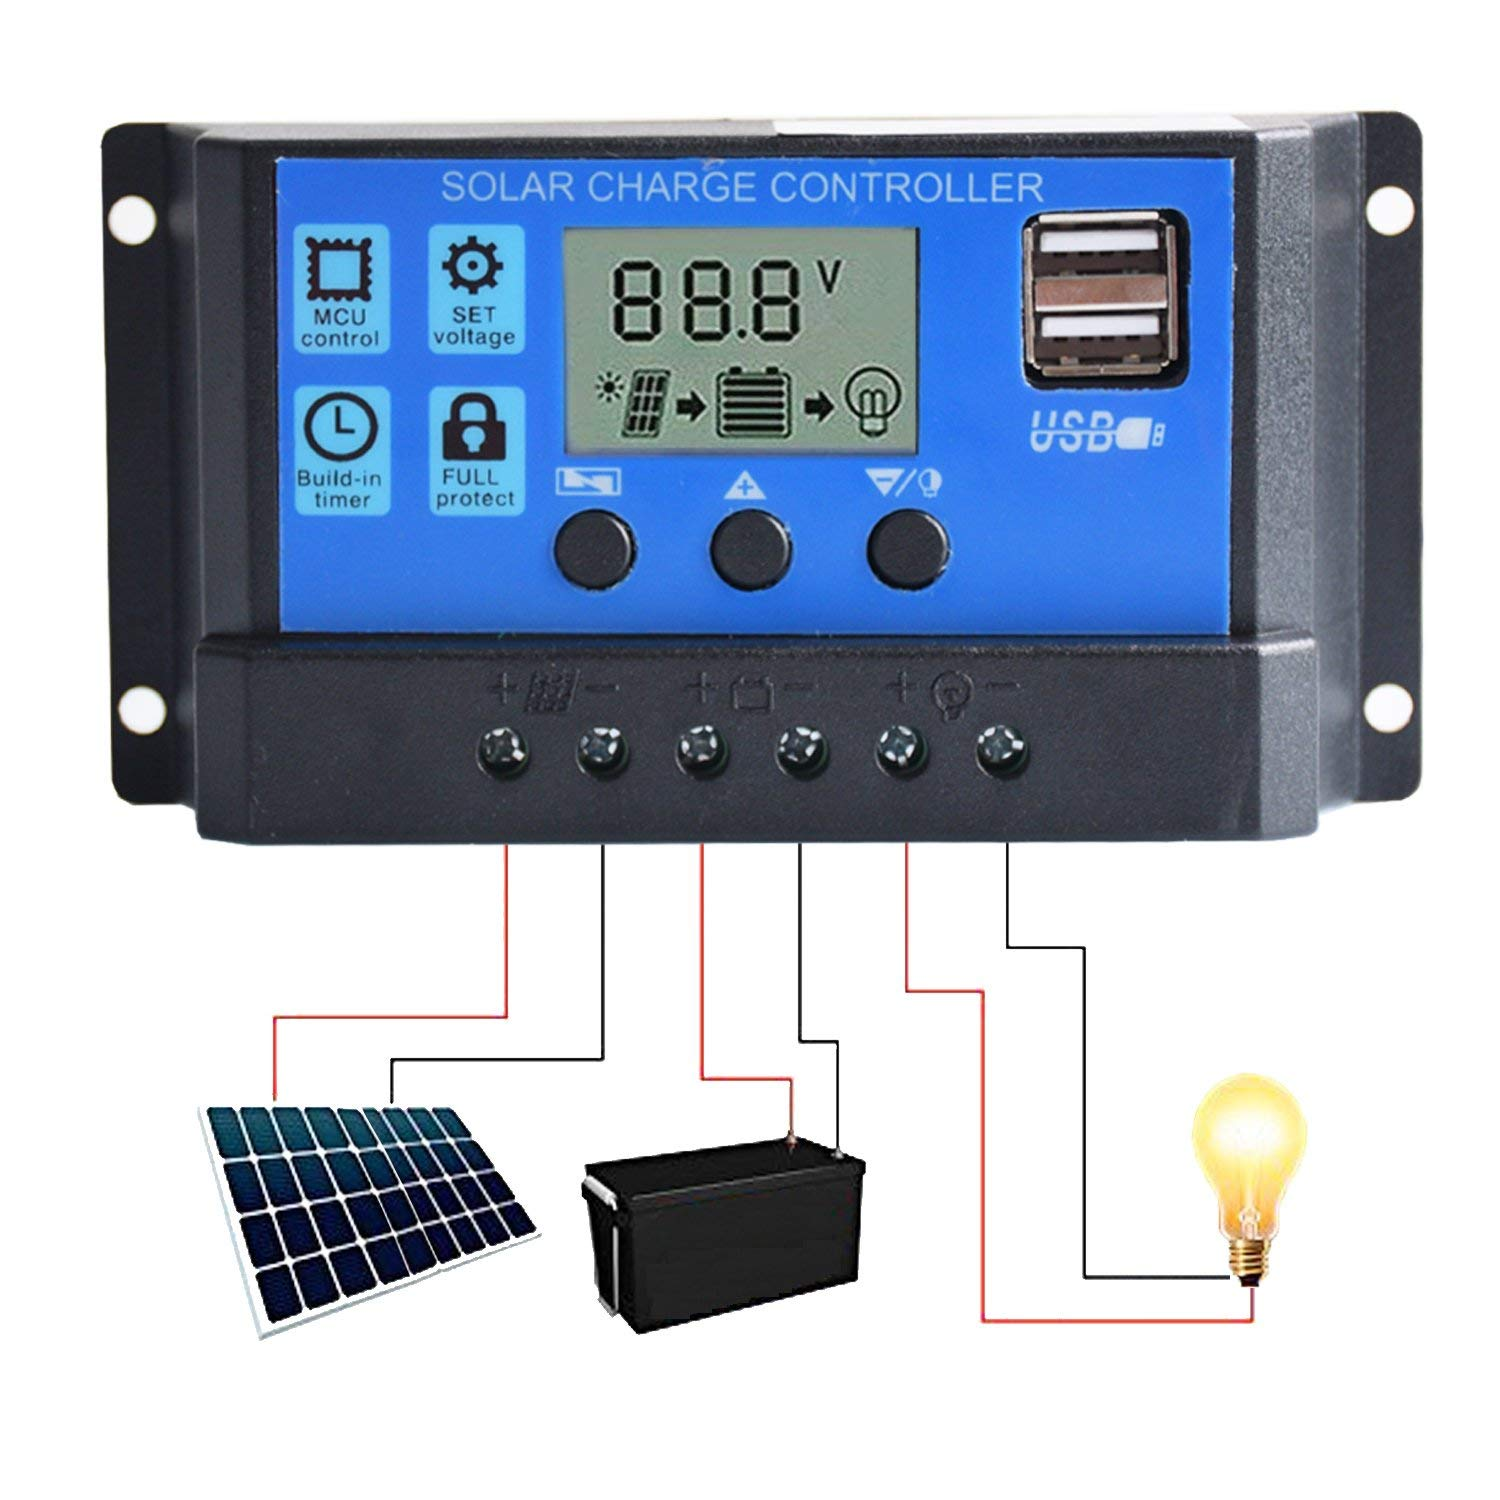 10A 20A 30A Solar Charge Controller Solar Panel Battery Intelligent Regulator USB Port Display 12V 24V